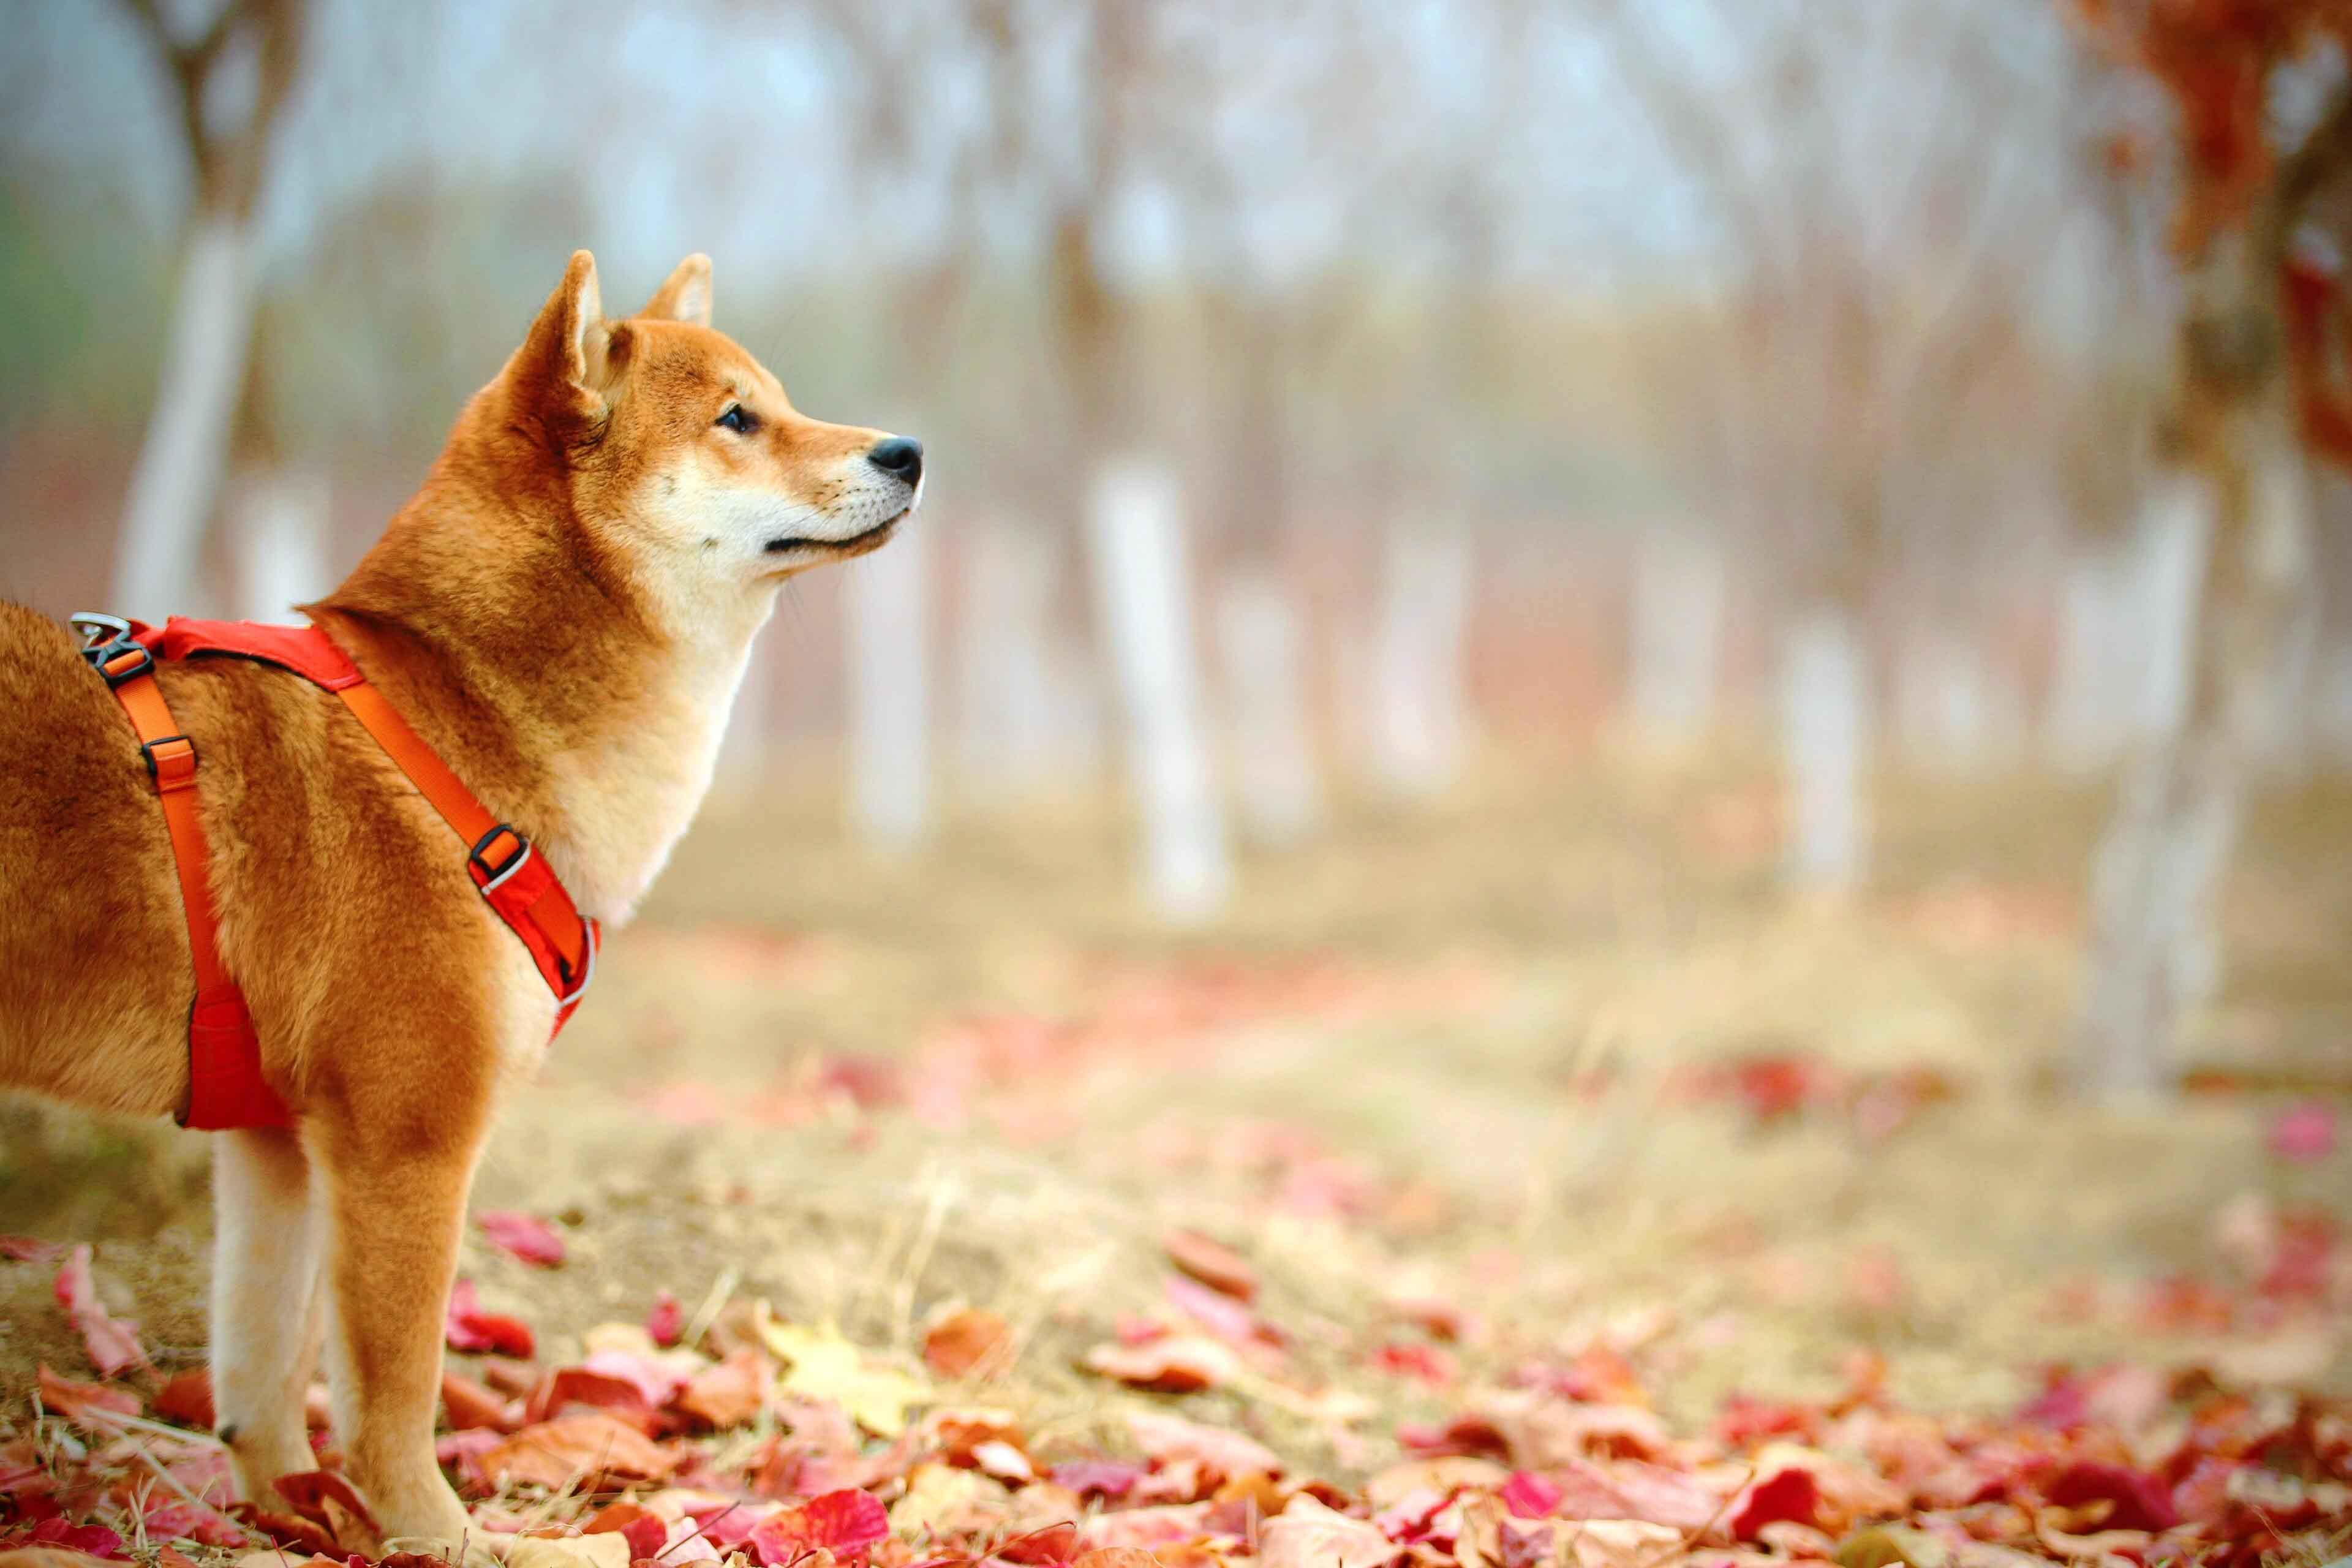 tan dog standing in forest in autumn